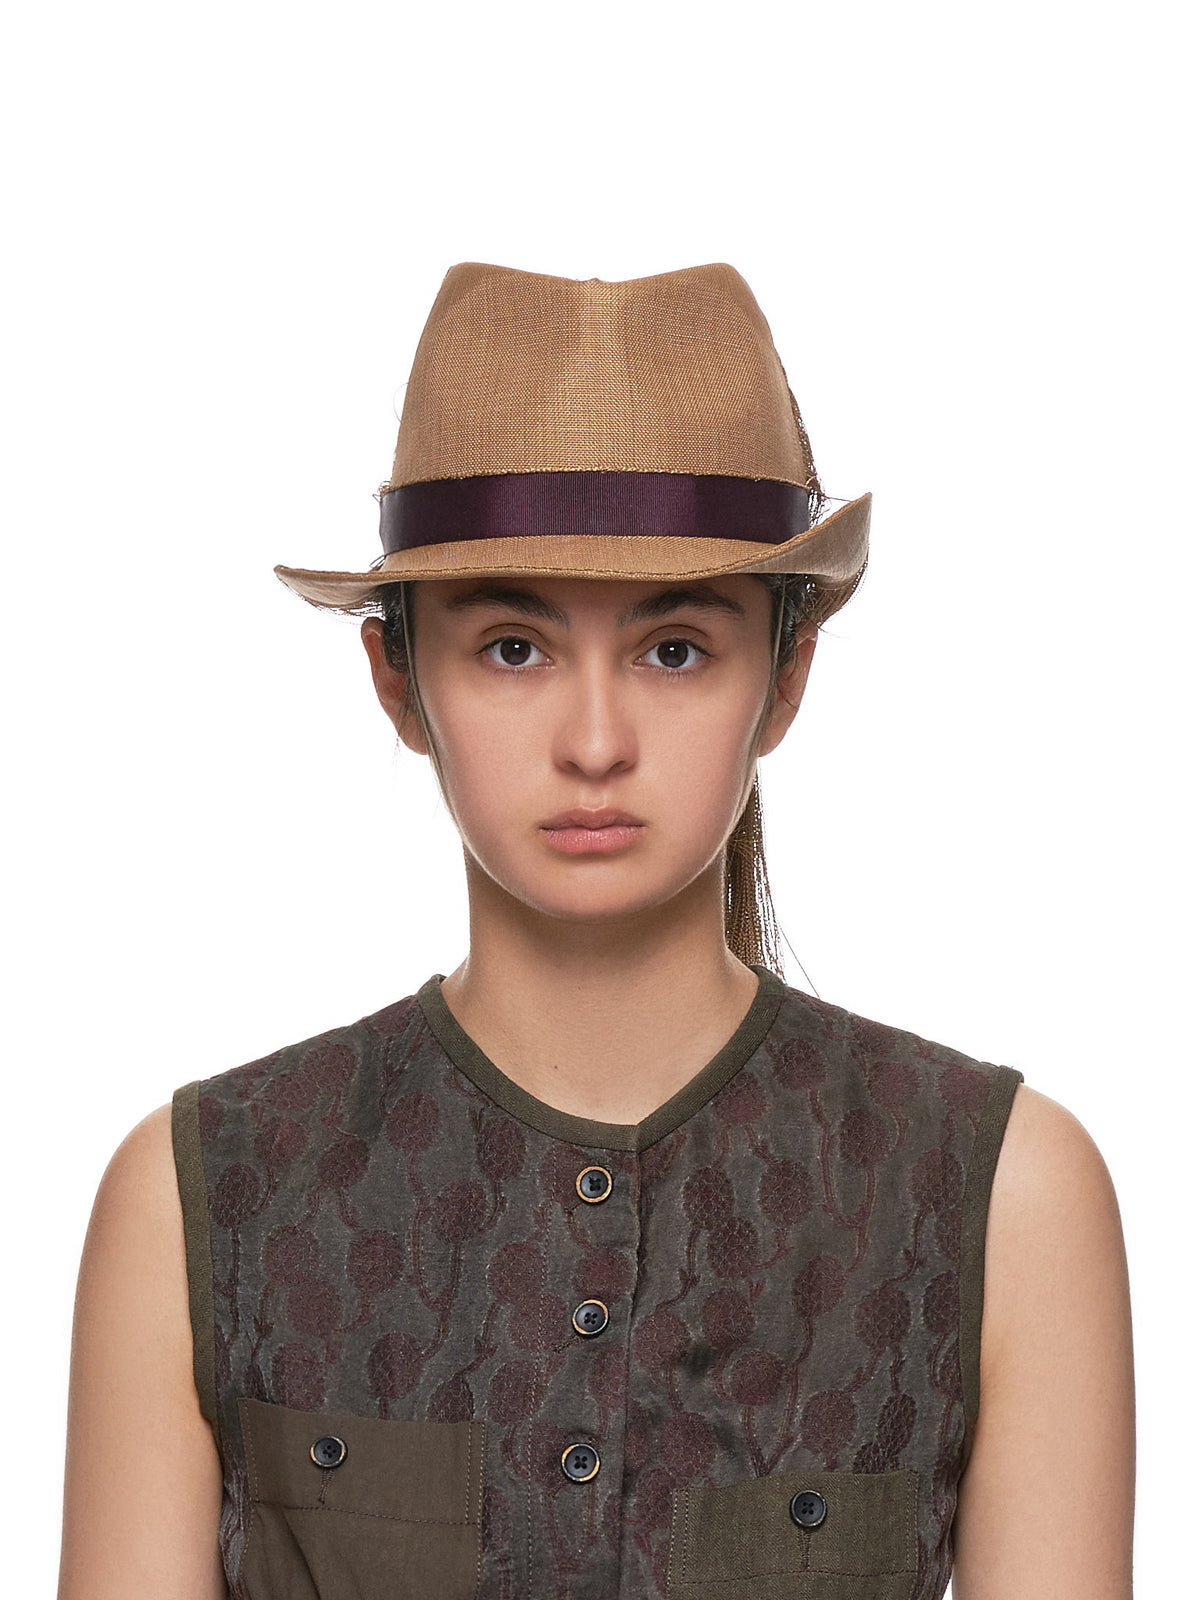 'Instant Hat' (7-INSTANT-BROWN)